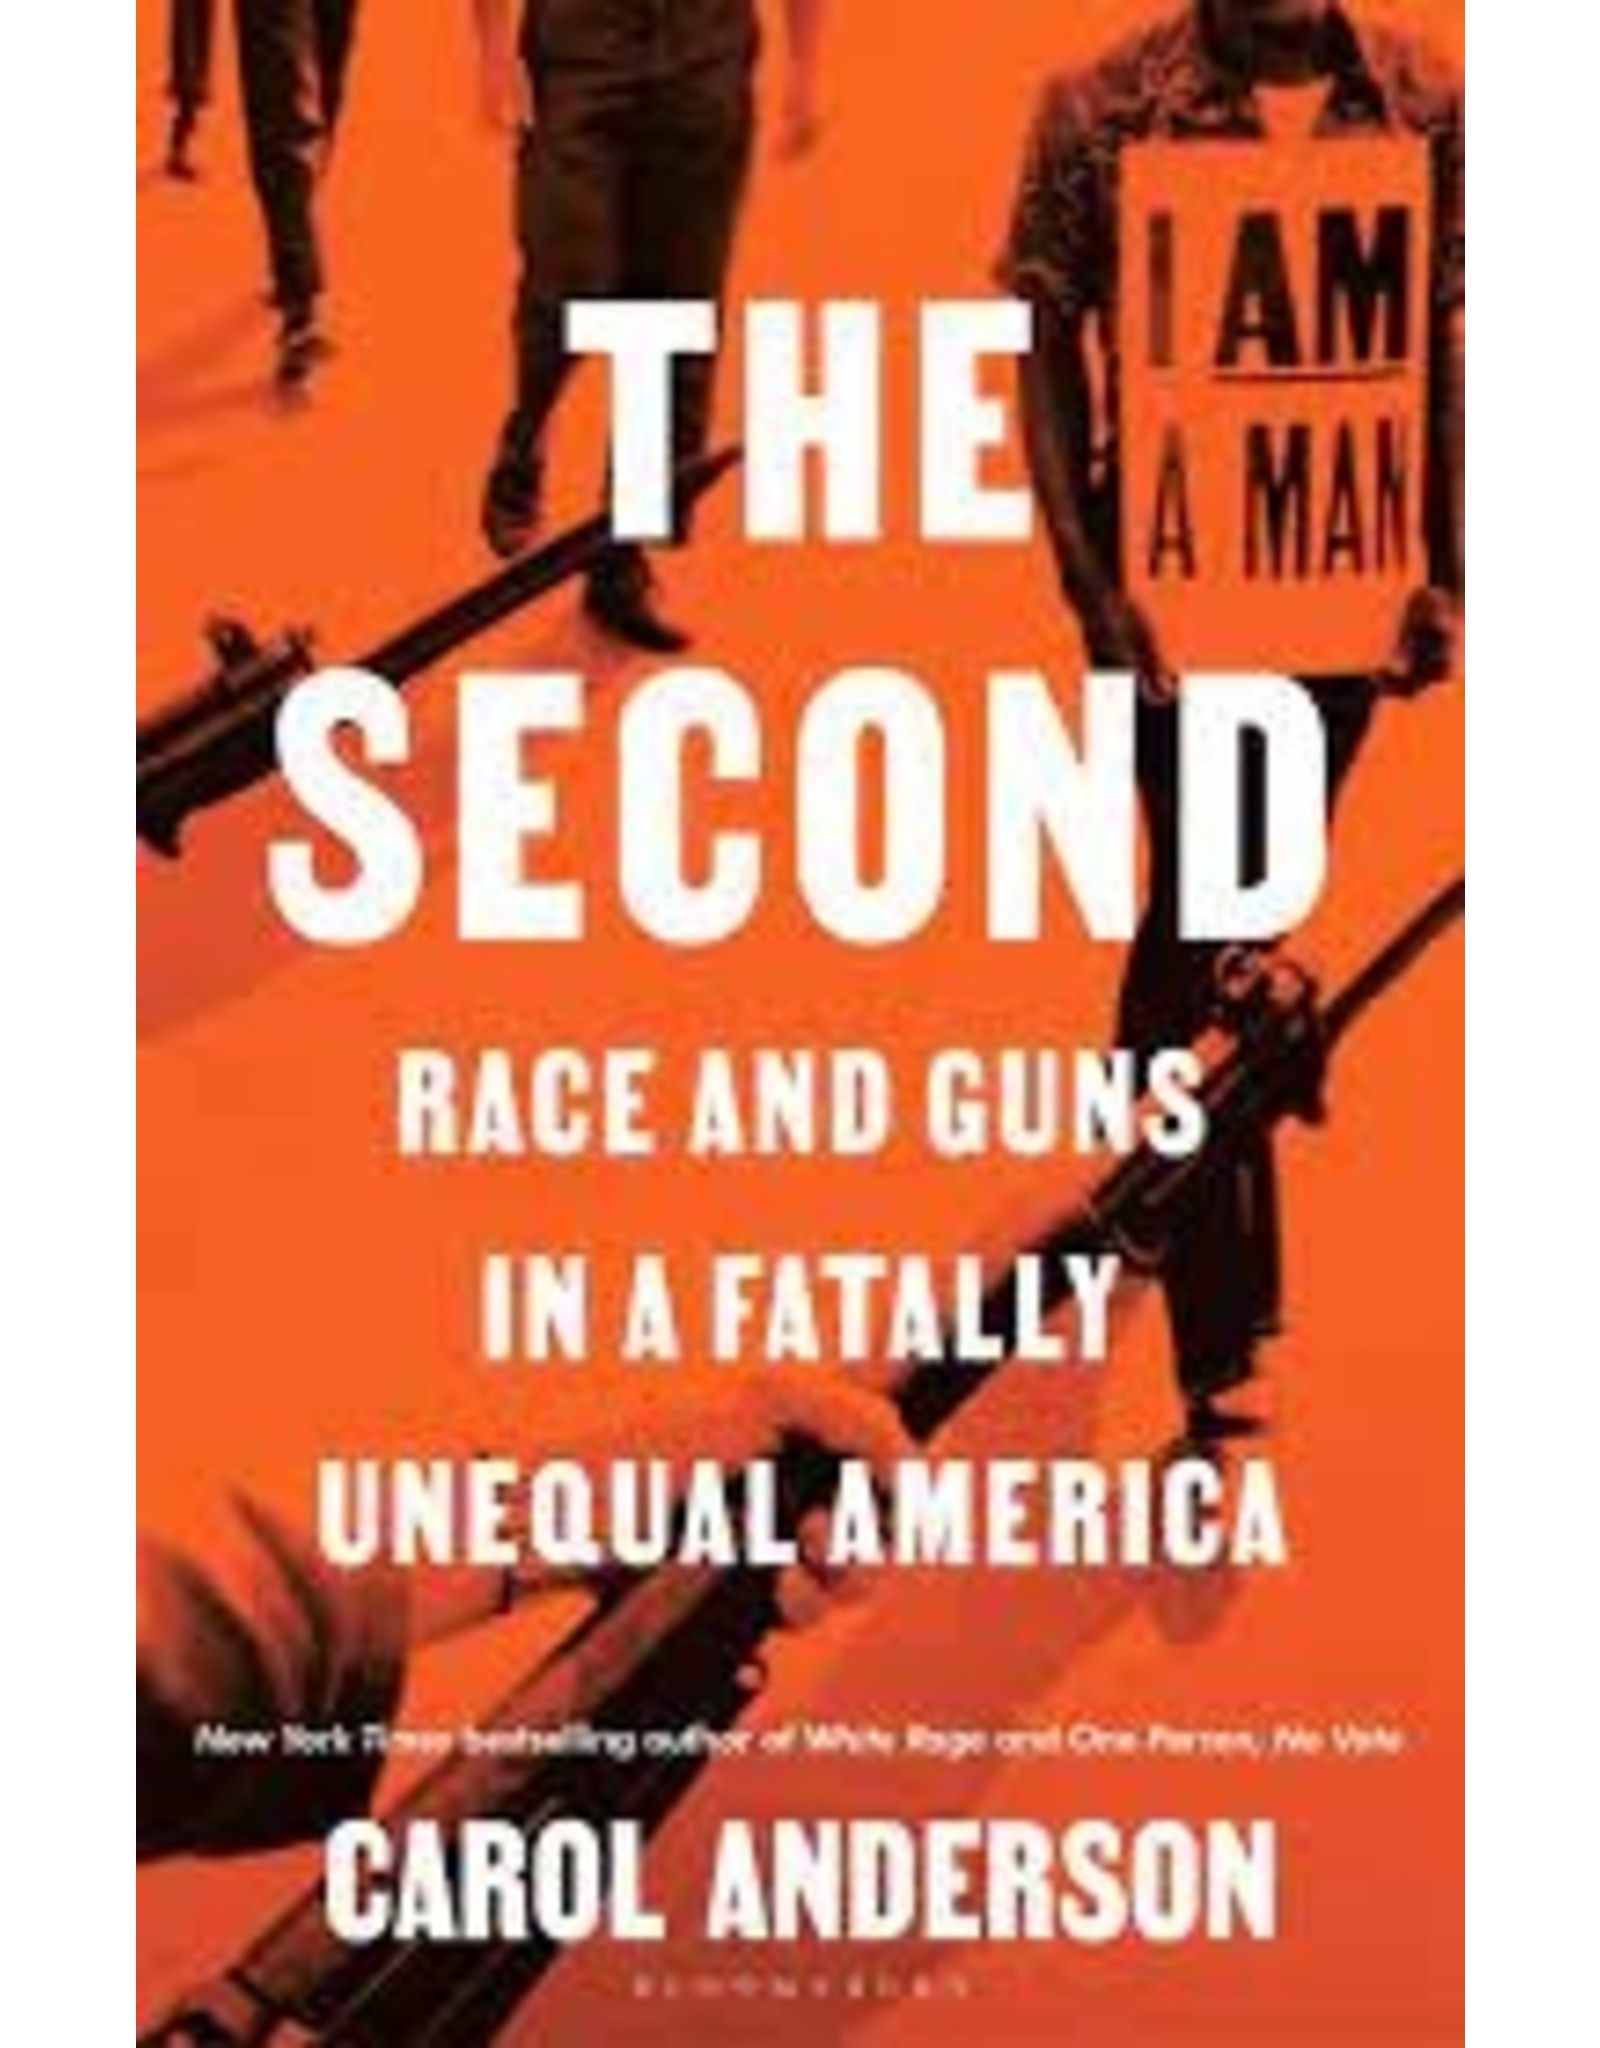 Books The Second: Race and Guns in a Fatally Unequal America by Carol Anderson (Signed Copies)